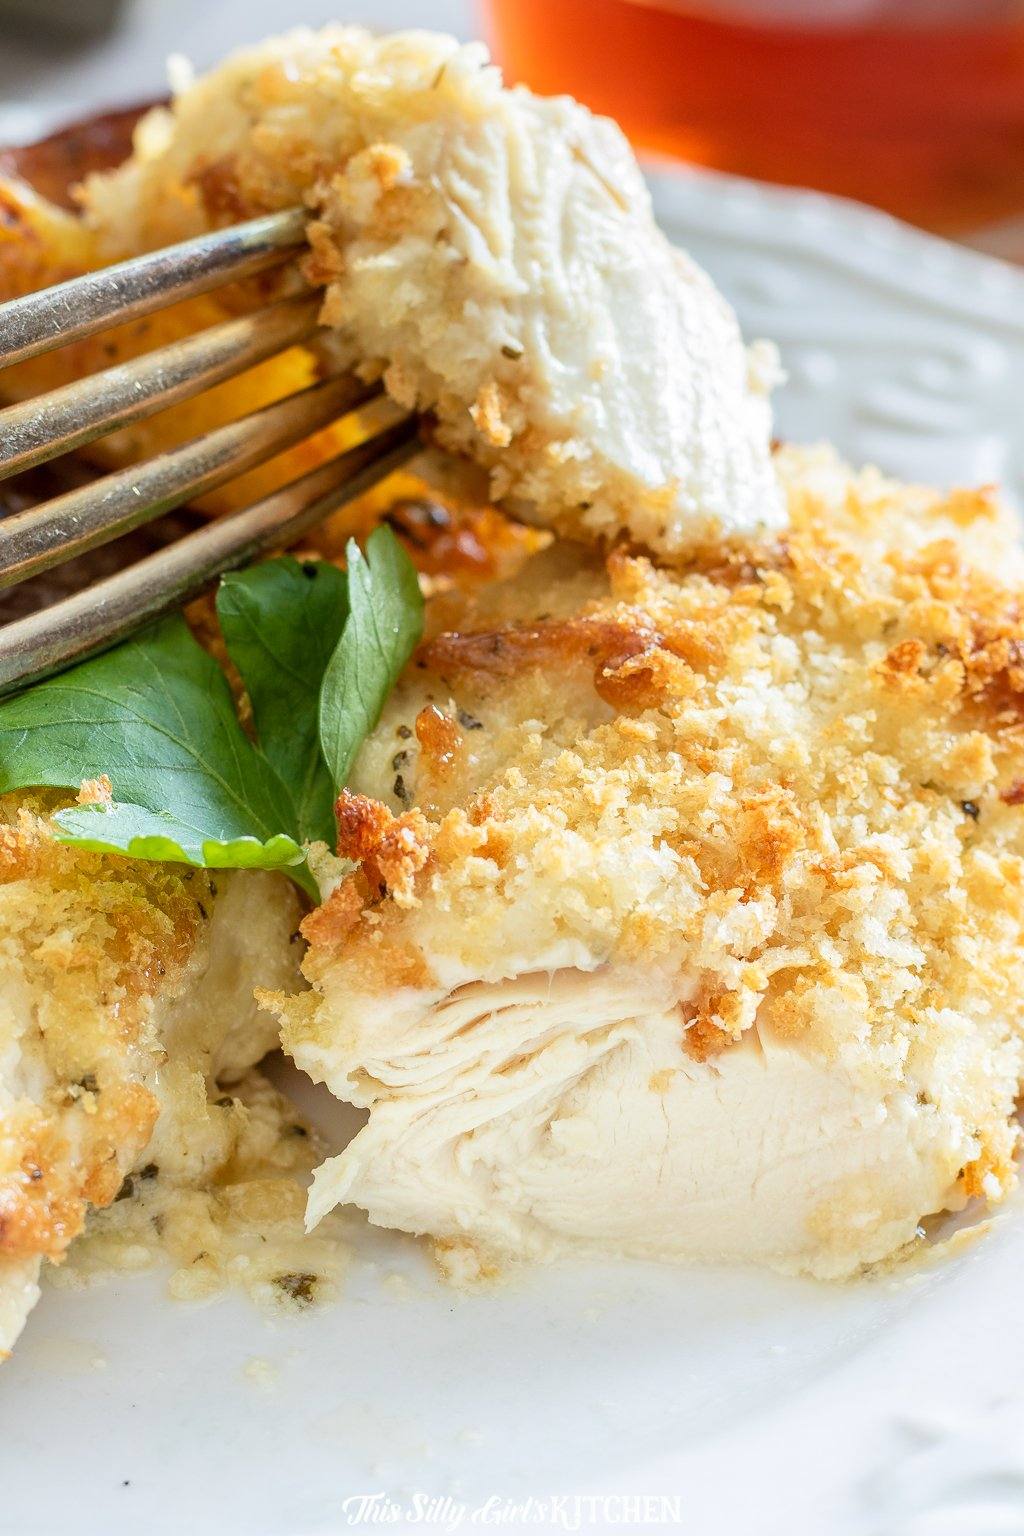 These chicken tenders are baked, with a flavorful parmesan coating that gets rave reviews each time I make them! #recipe from thissillygirlskitchen.com #chickentenders #bakedchickentenders #chicken #dinner #parmesan